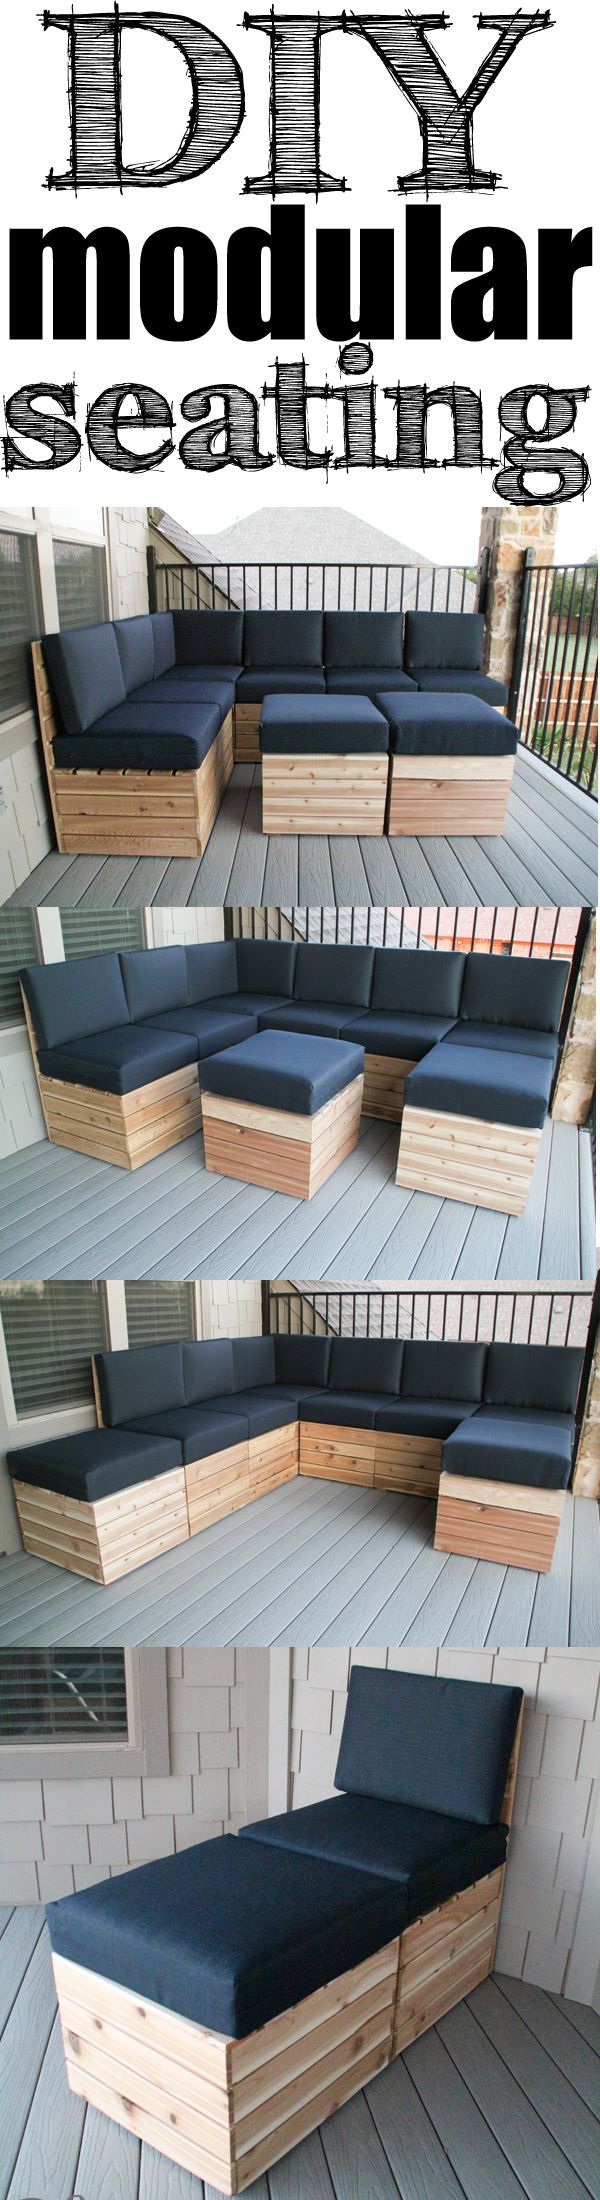 DIY Modular Sectional - Corner Piece Plans | Spaces, Easy and Free